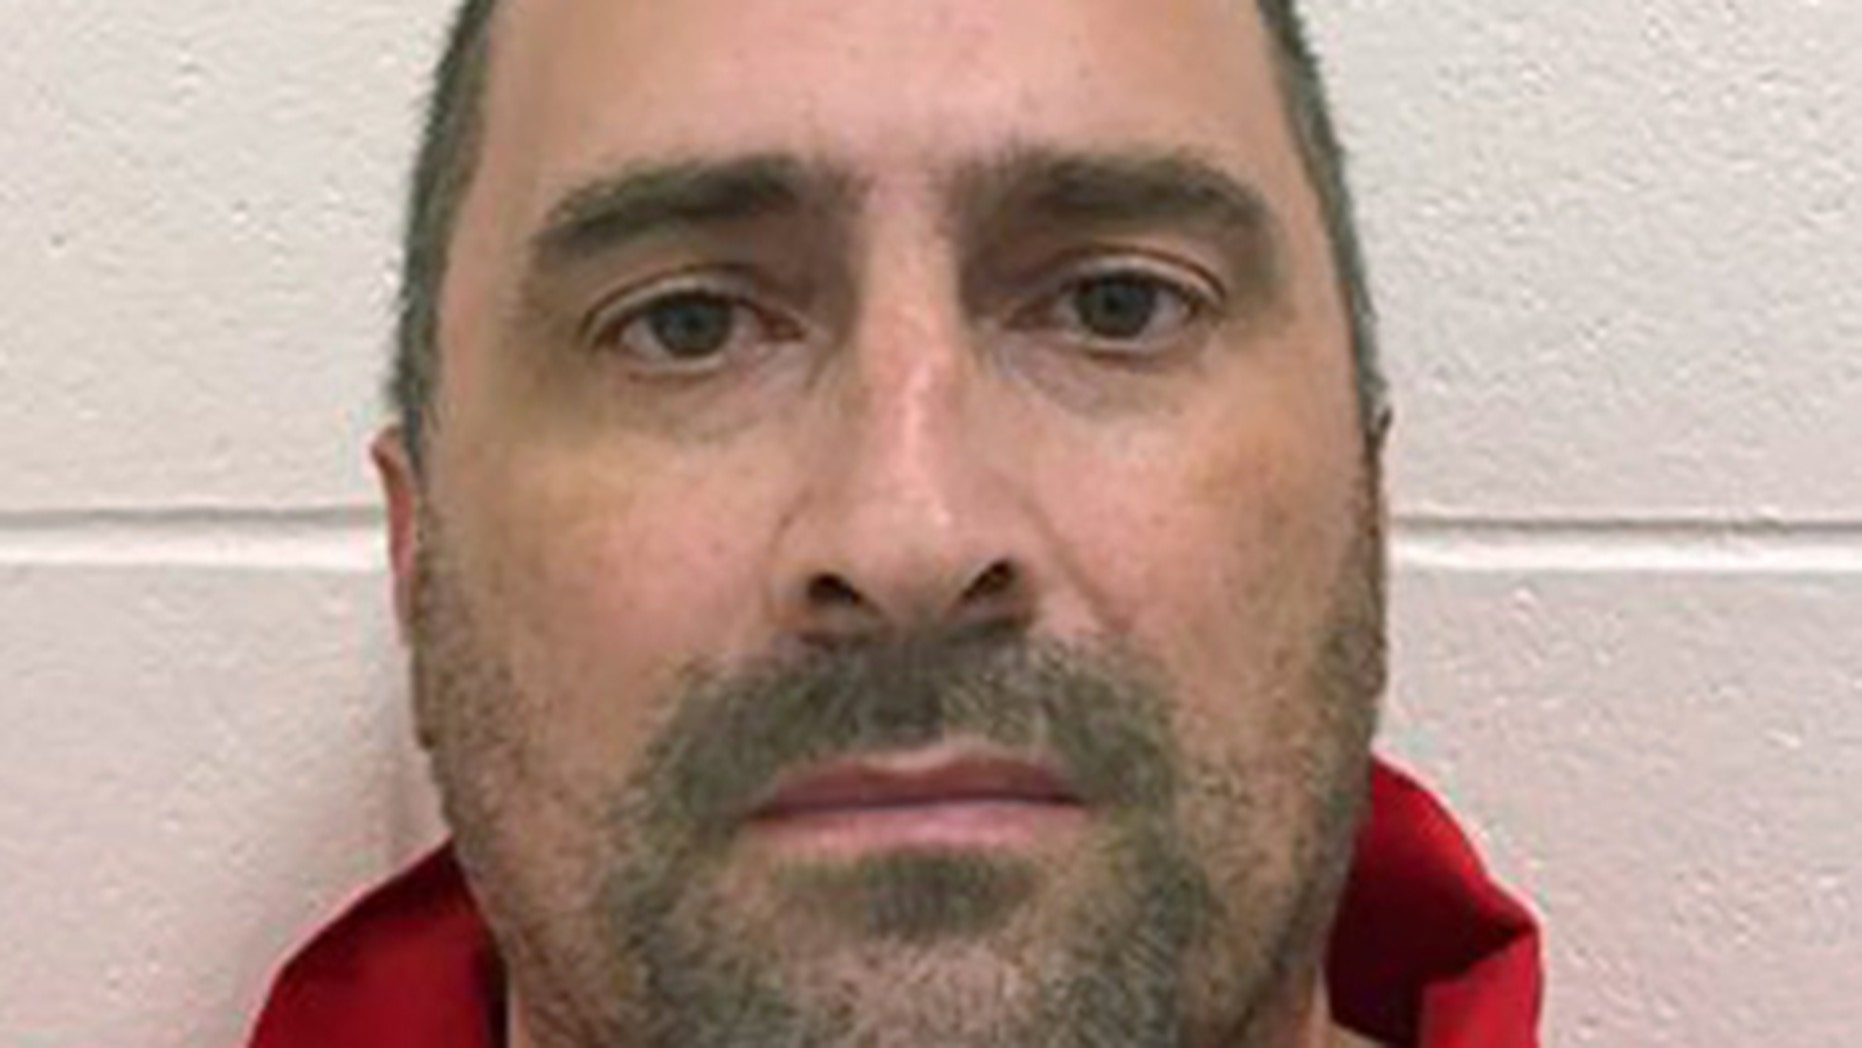 This booking photo released Monday, Sept. 18, 2017, by the Hamden District Attorney shows Gary Schara, of West Springfield, Mass.